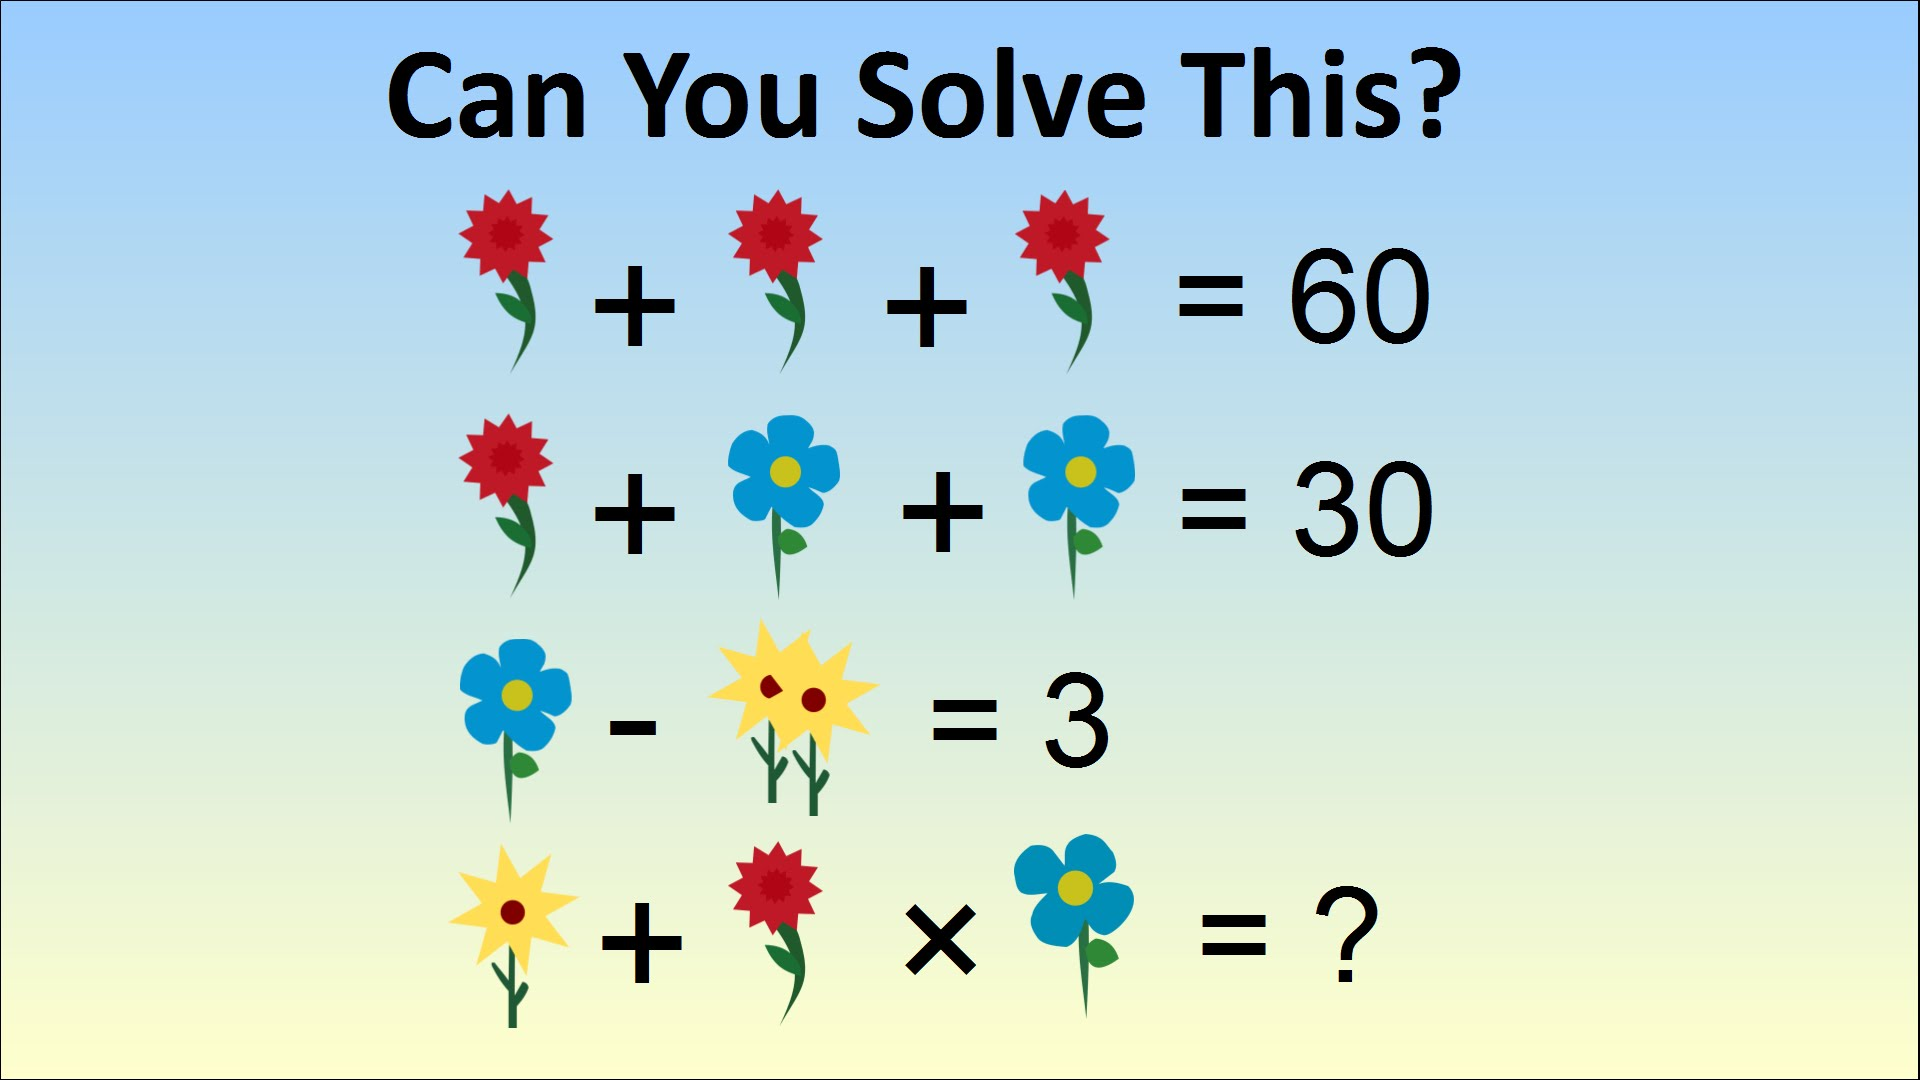 Can You Solve This Flower Math Problem? | The Science Explorer